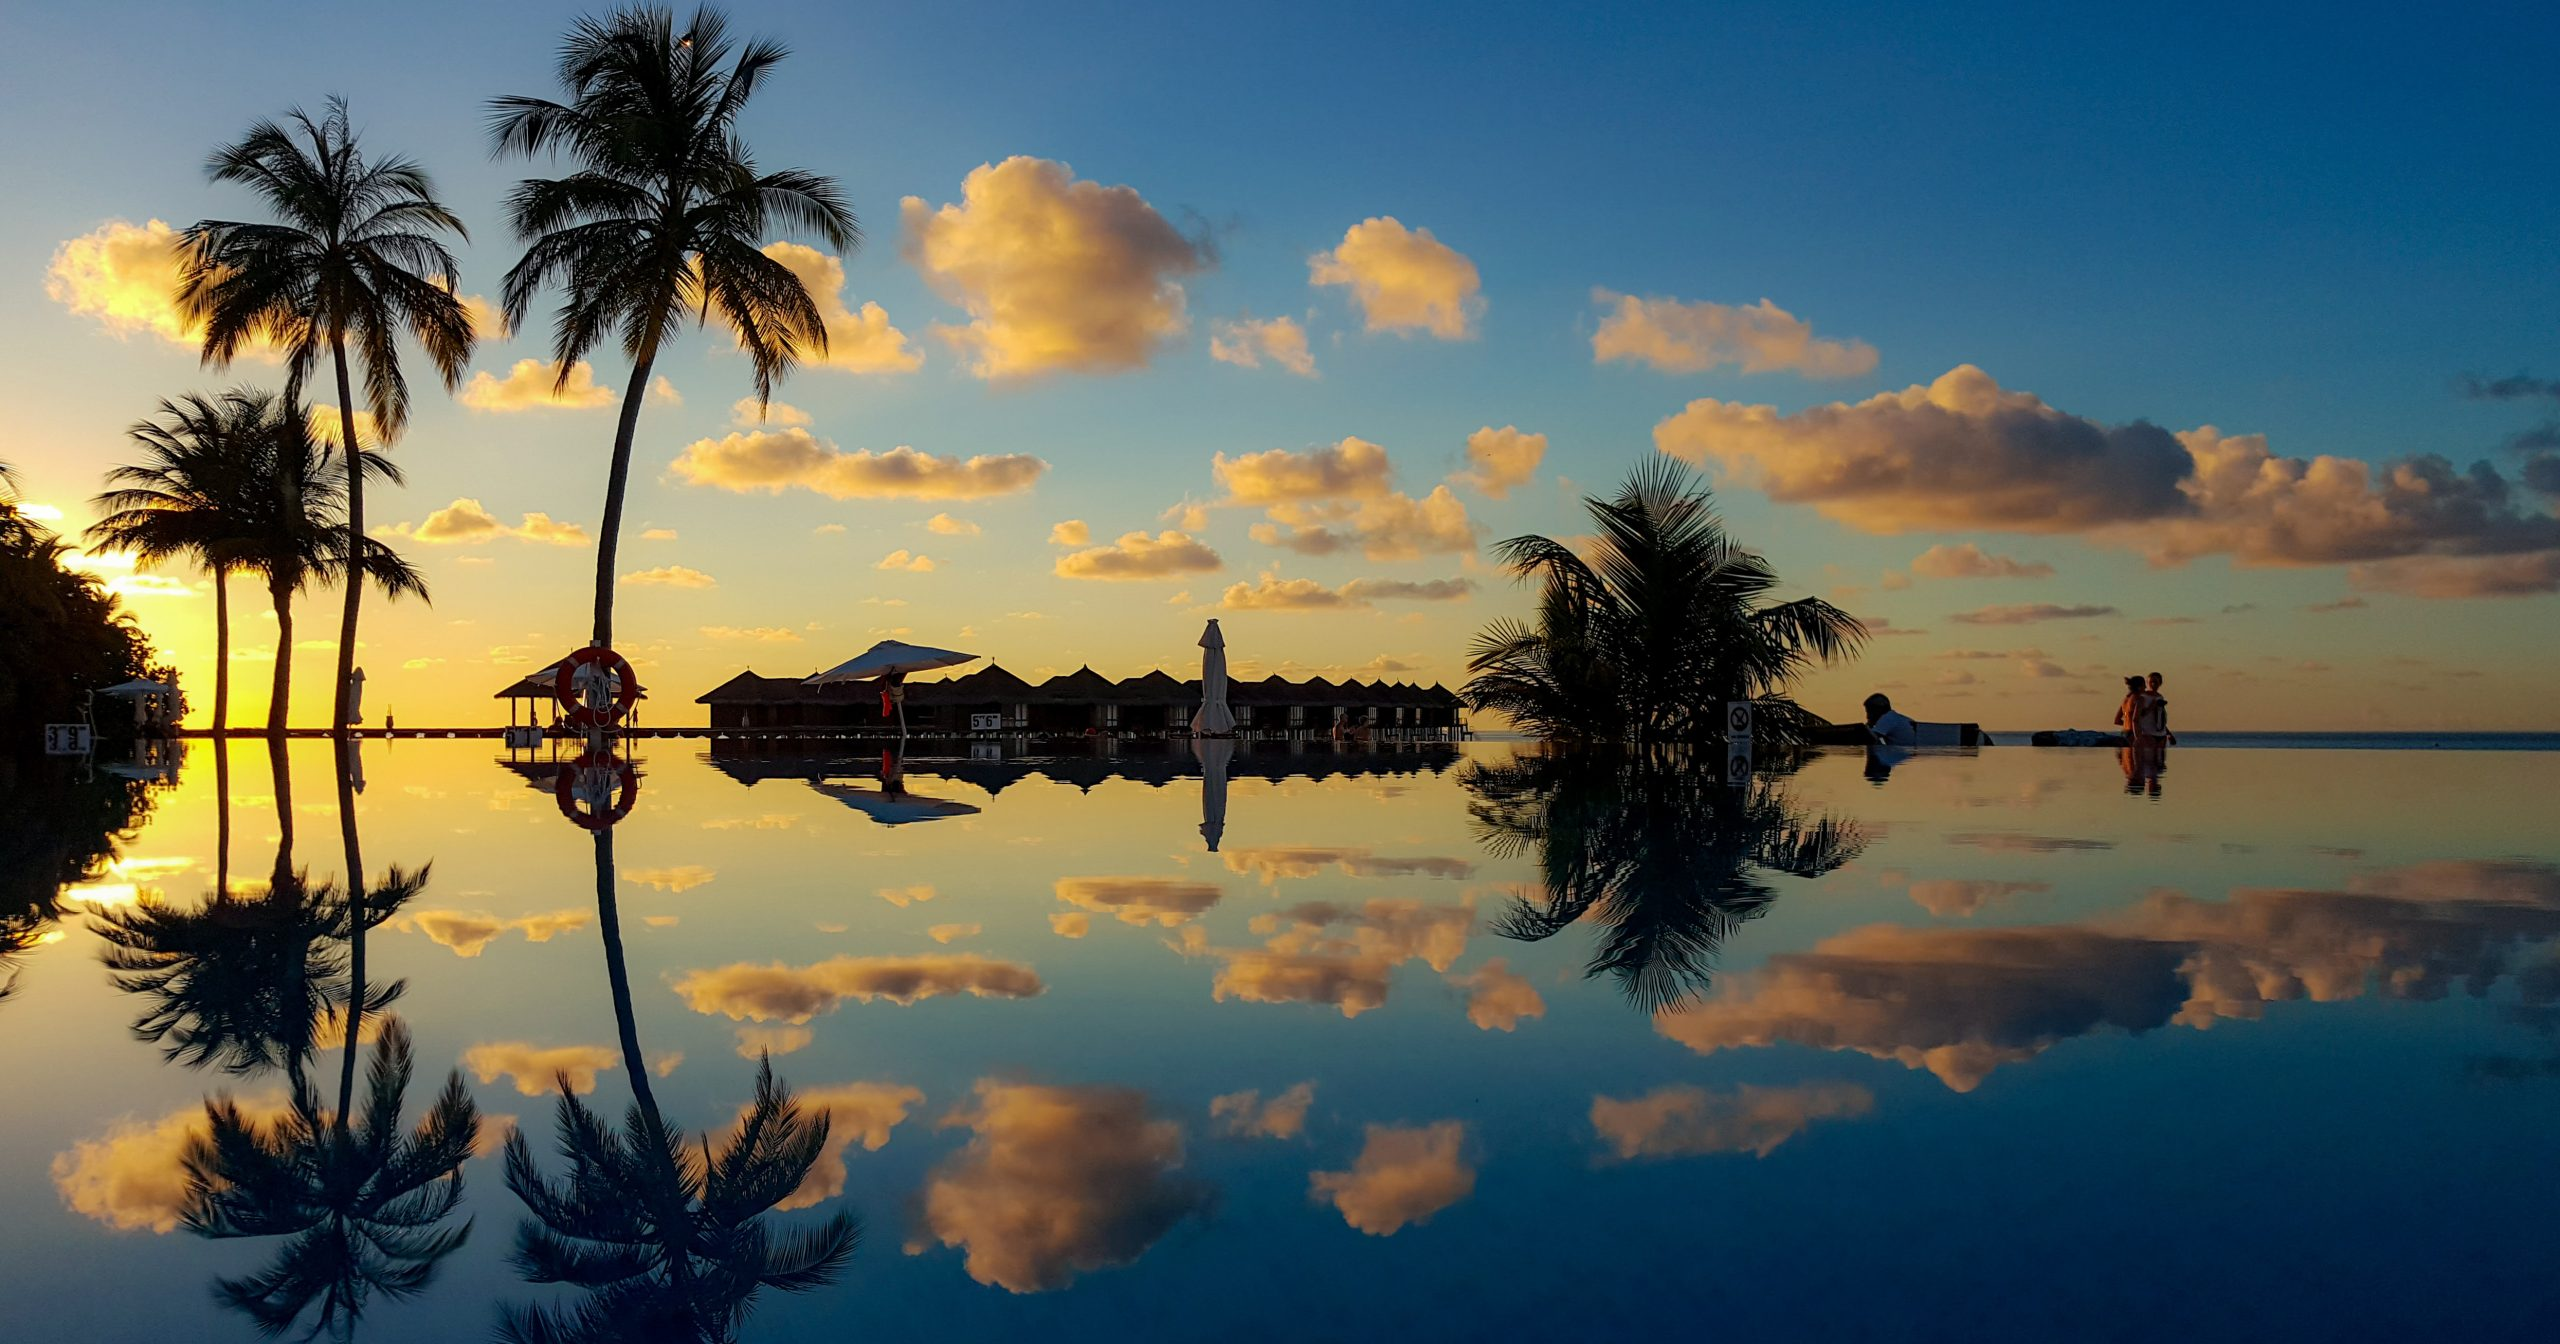 TRAVEL: Our Indian Ocean special - Sri Lanka & The Maldives for families 2